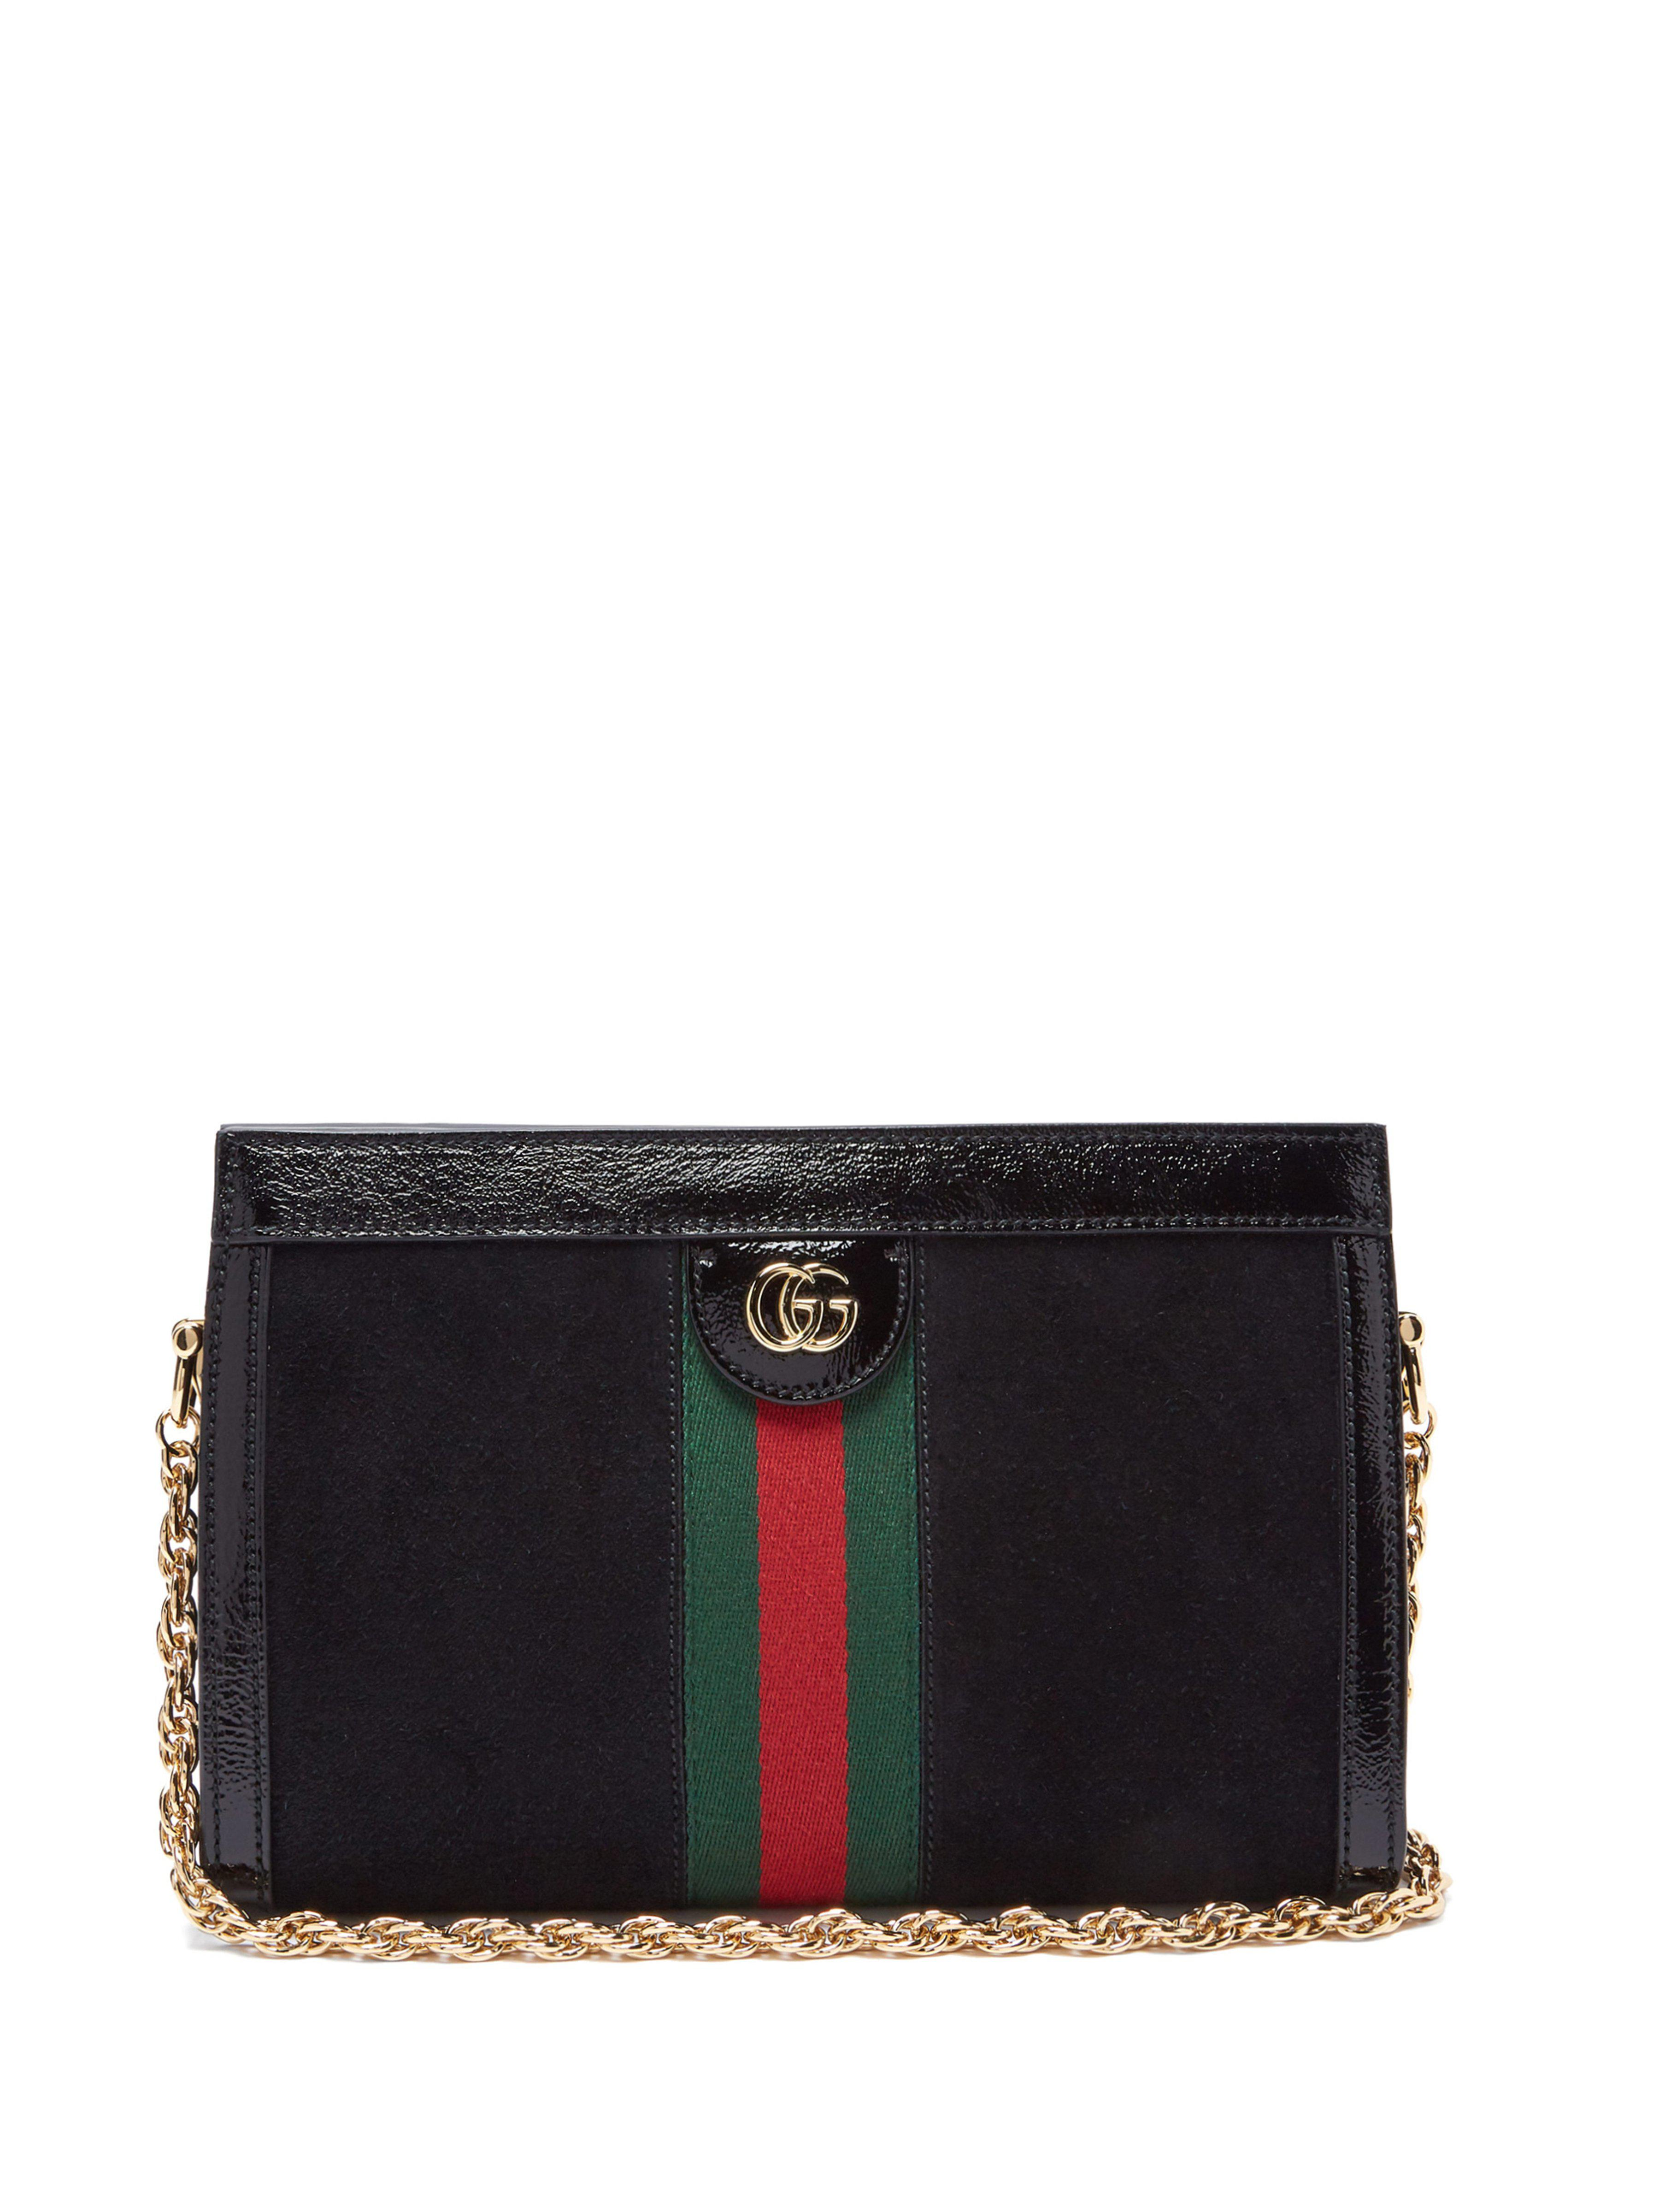 b1fb6ac0171 Gucci Ophidia Small Shoulder Bag in Black - Save 12% - Lyst